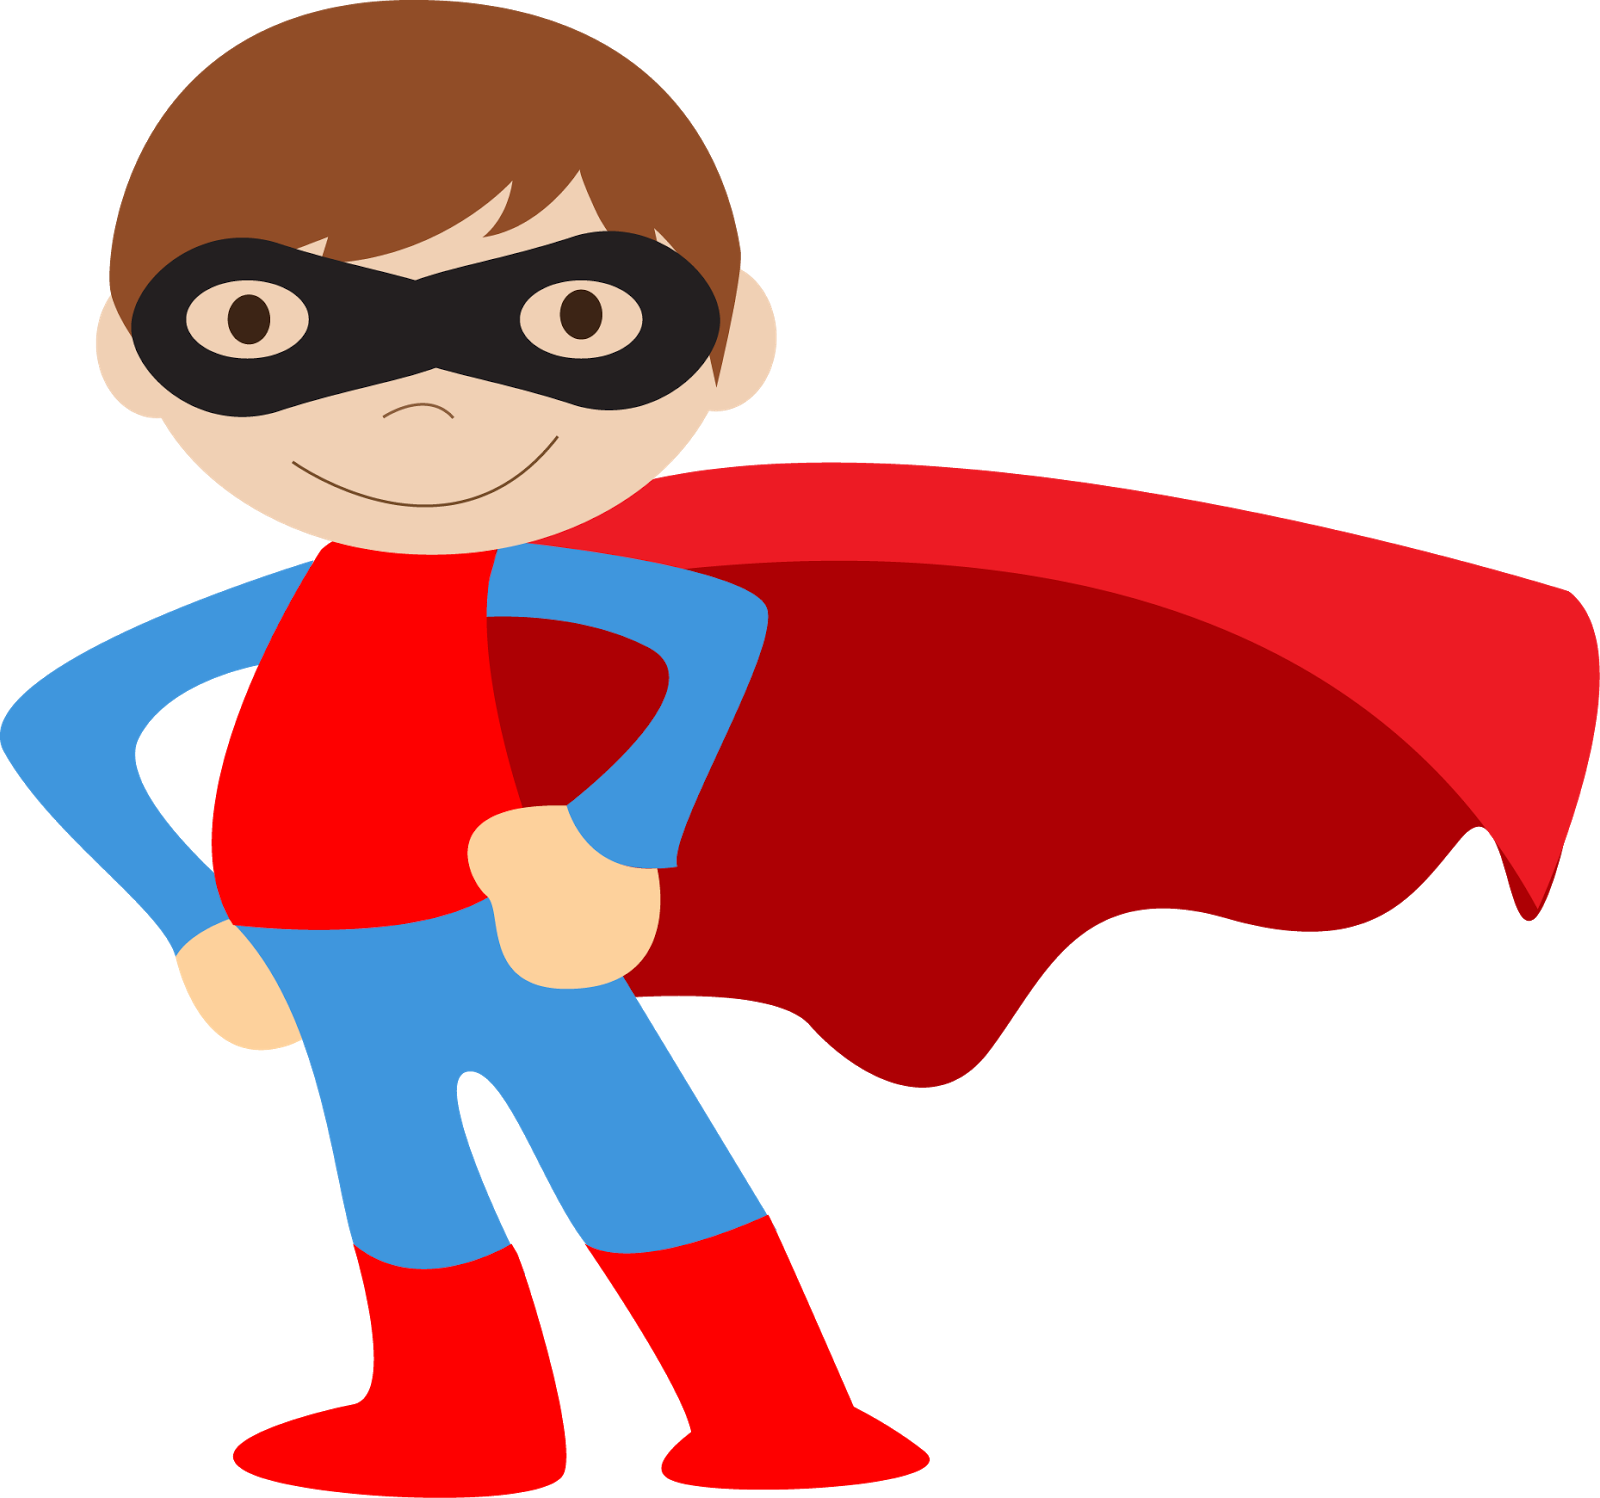 image library stock Superheroes png superh roes. Superhero kids clipart.